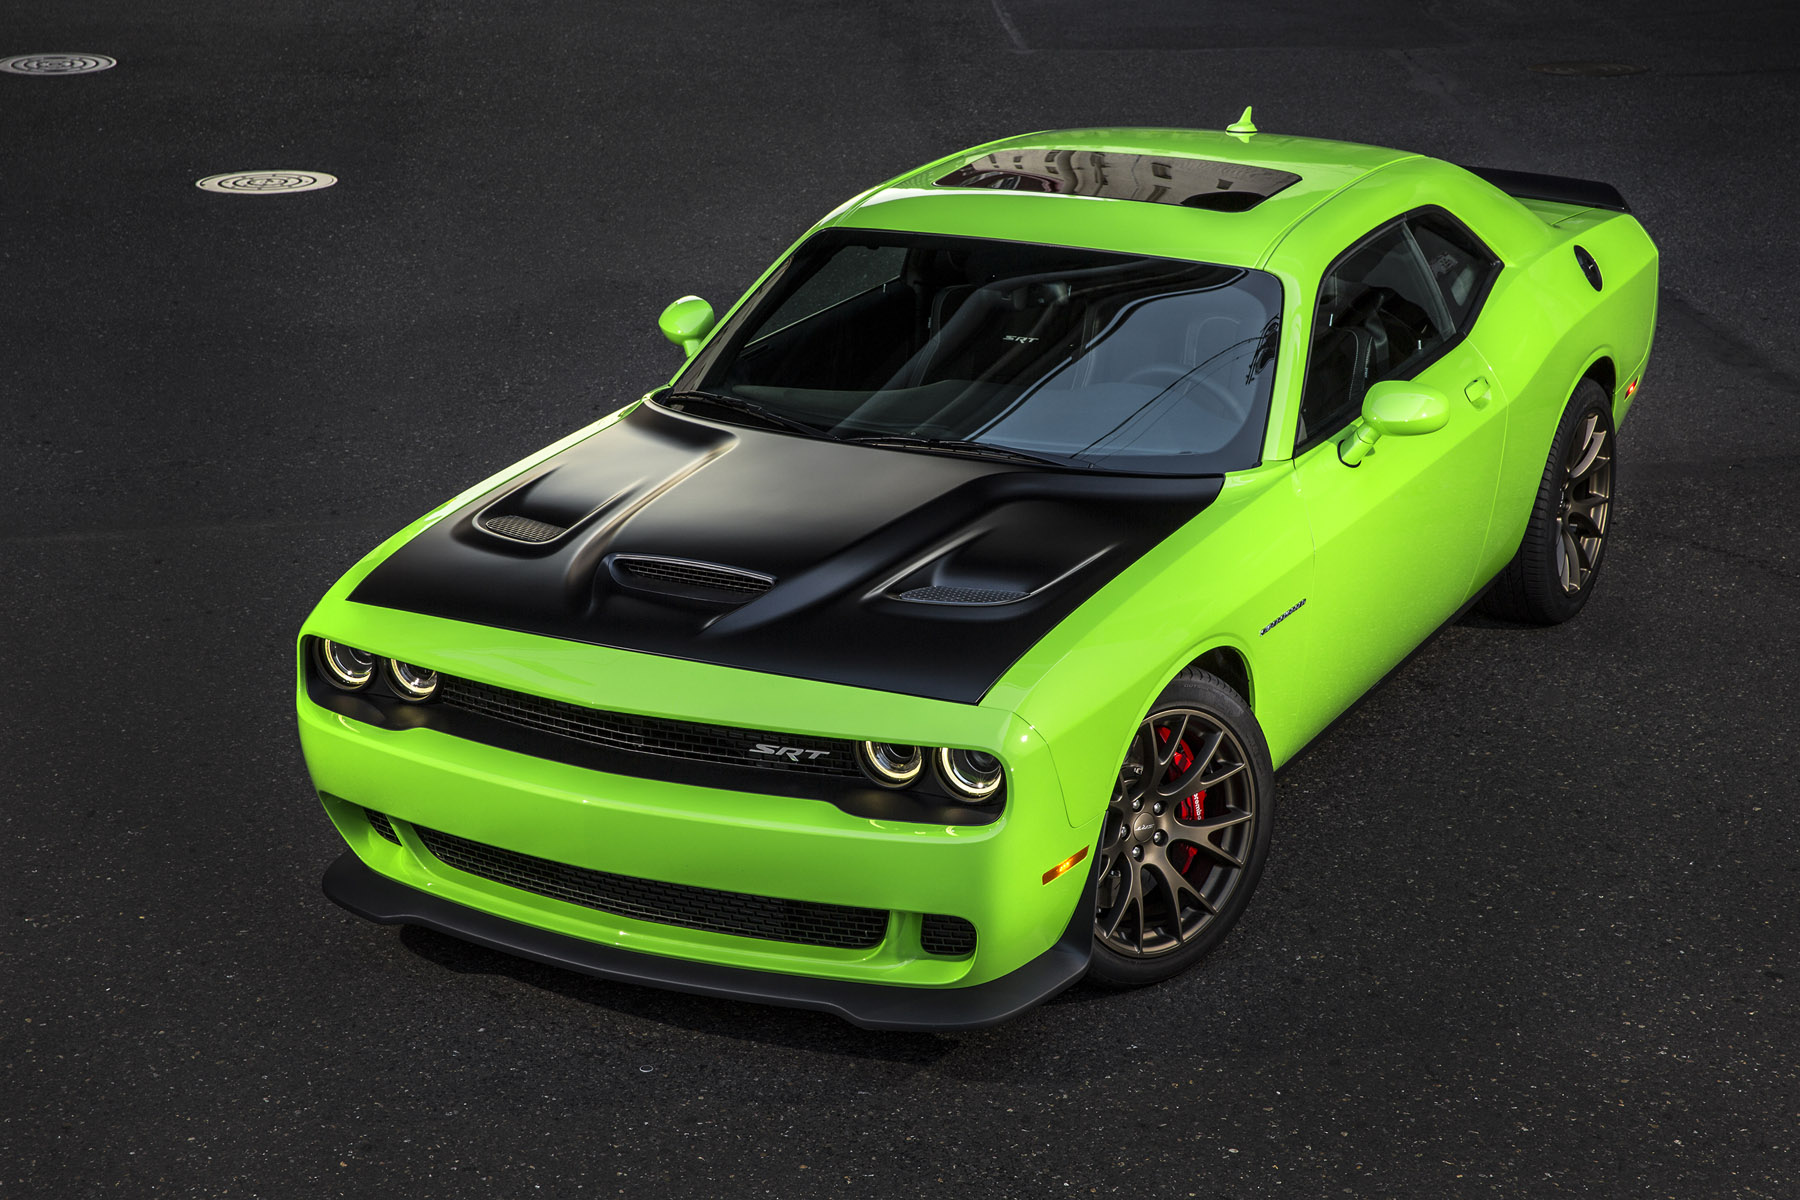 707 Horsepower Dodge Challenger SRT Hellcat Earns EPA